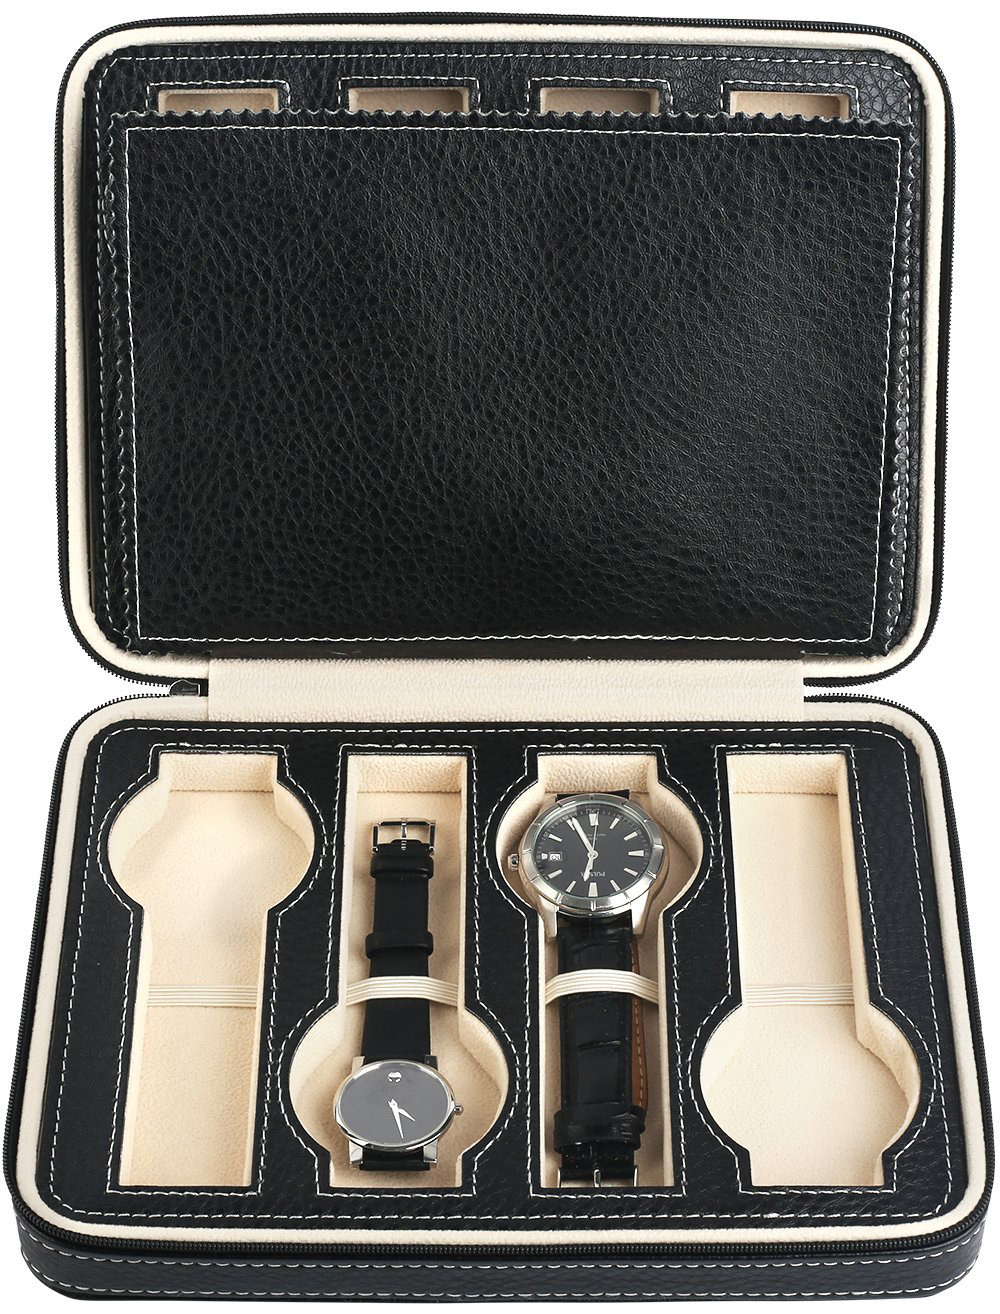 Beautiful Stitched Black Leather Watch Holder Case